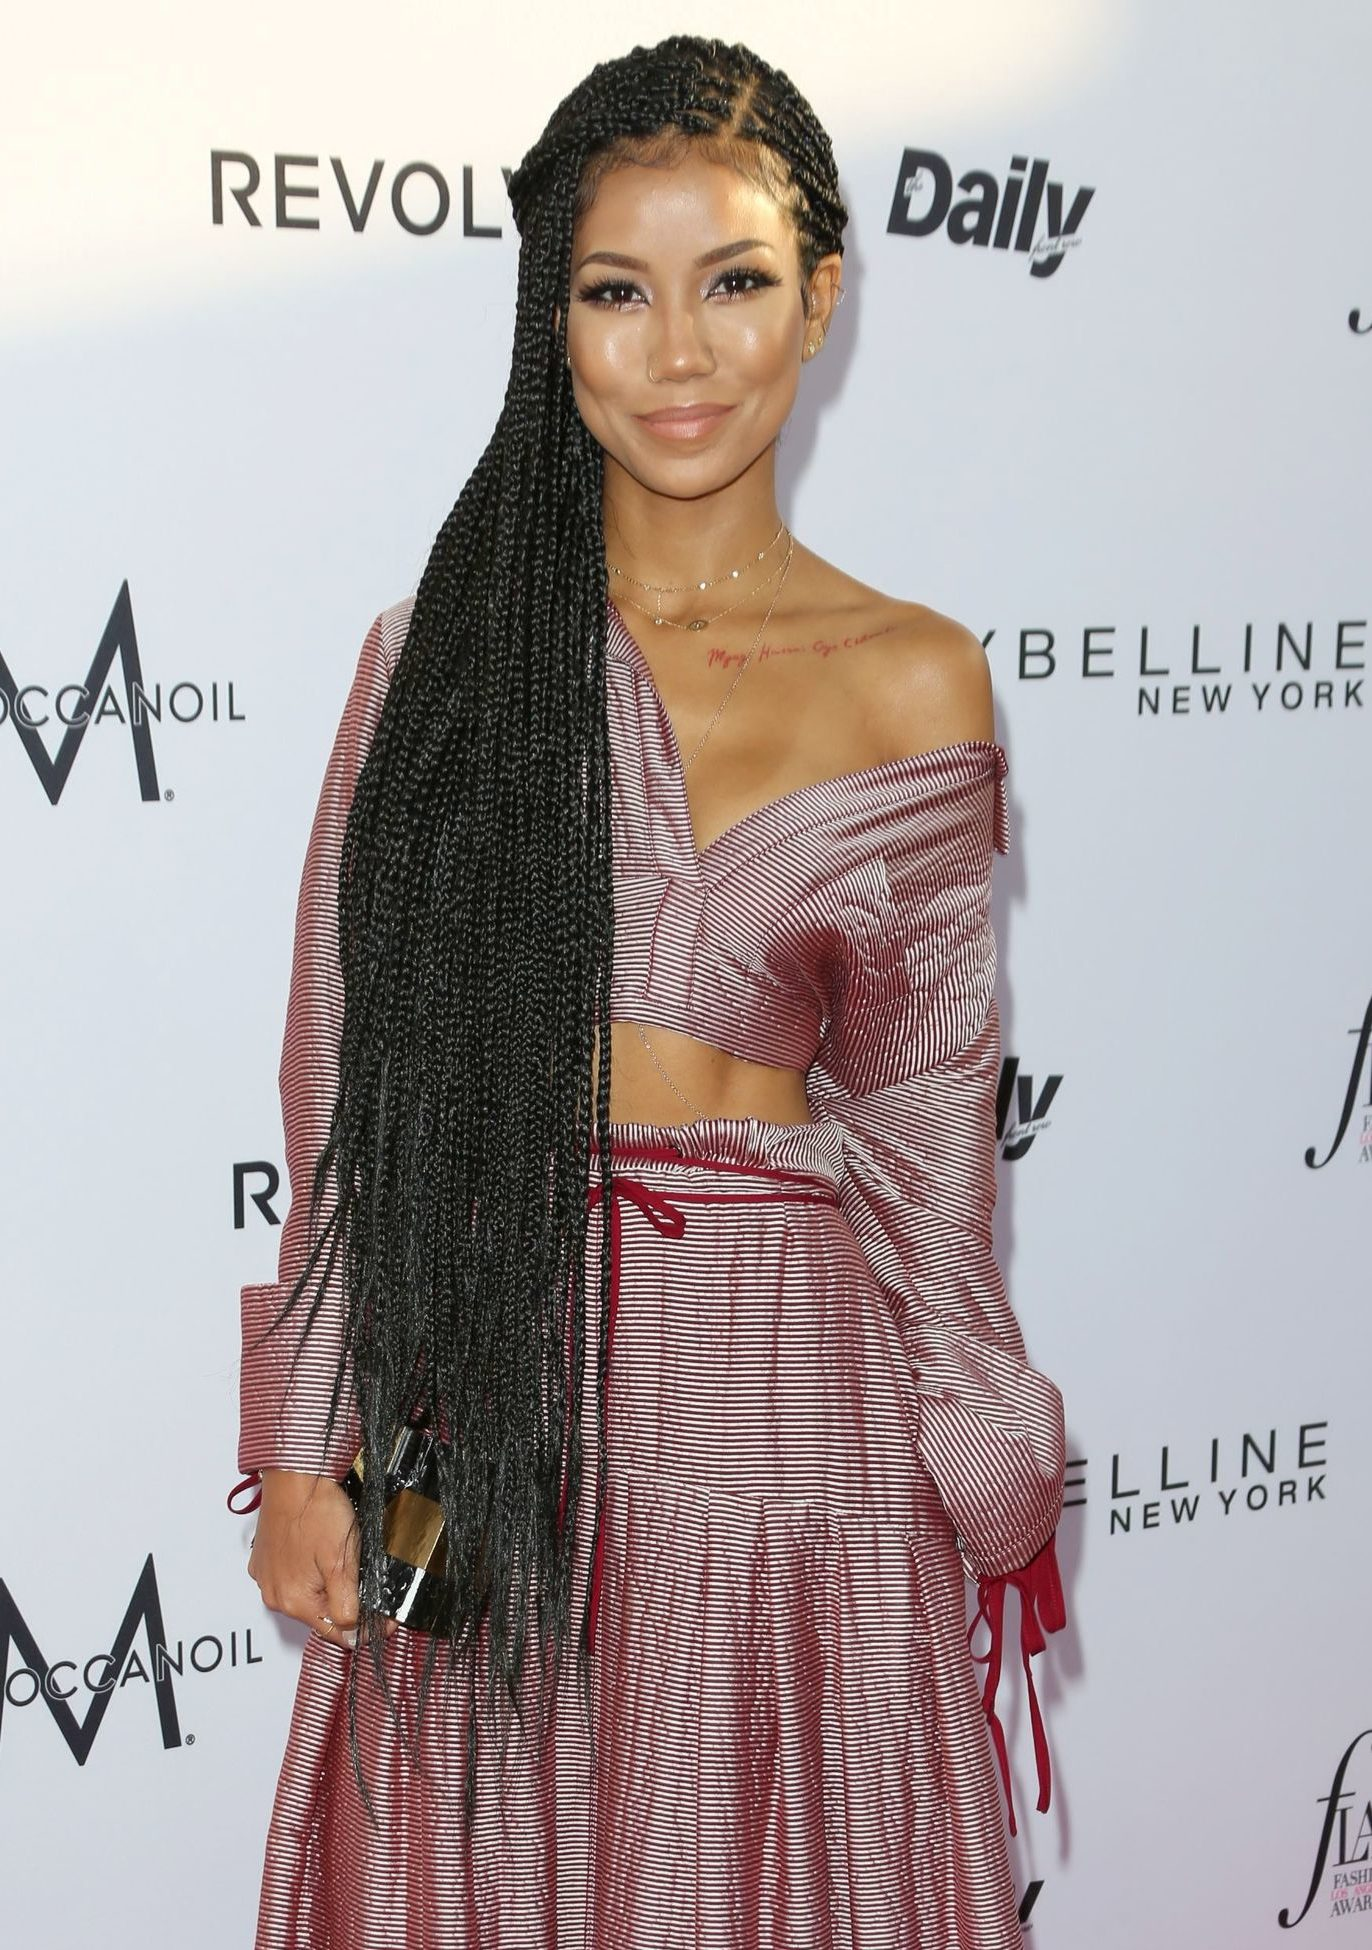 singer jhene aiko on the red carpet with hip length rapunzel braids